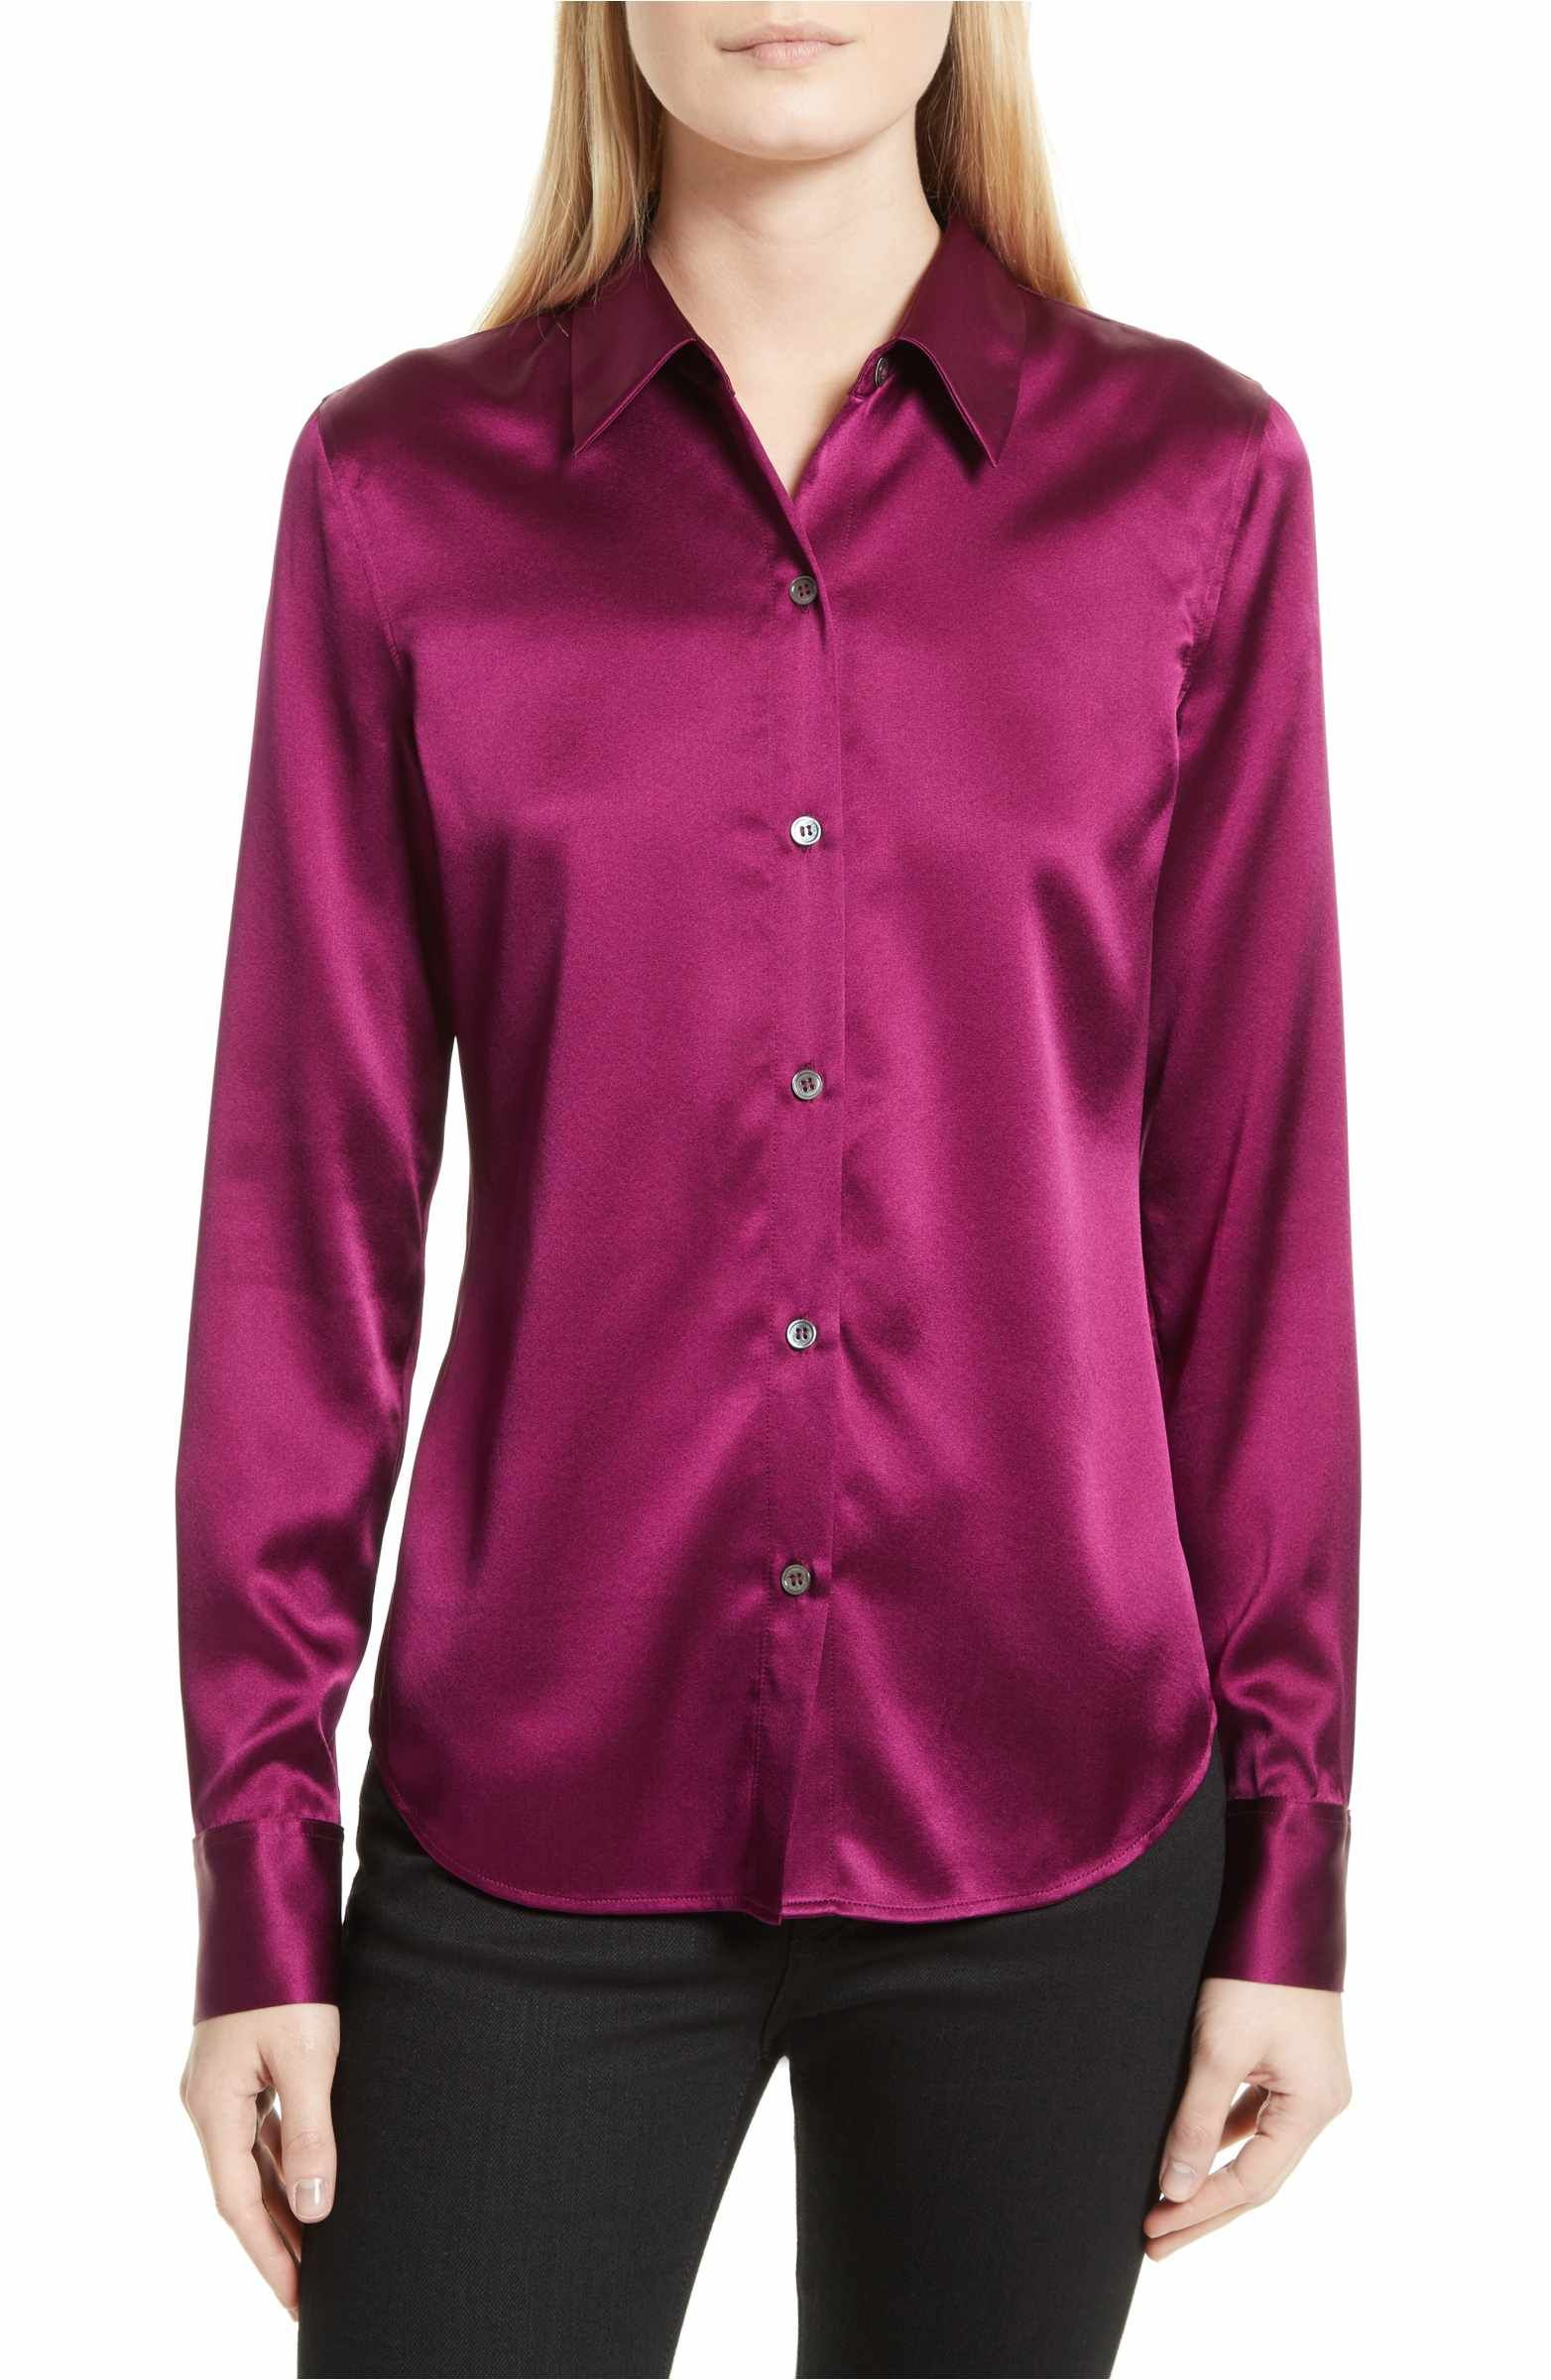 dbd0e343236 Main Image - Theory Perfect Fitted Stretch Satin Shirt | Nammy ...